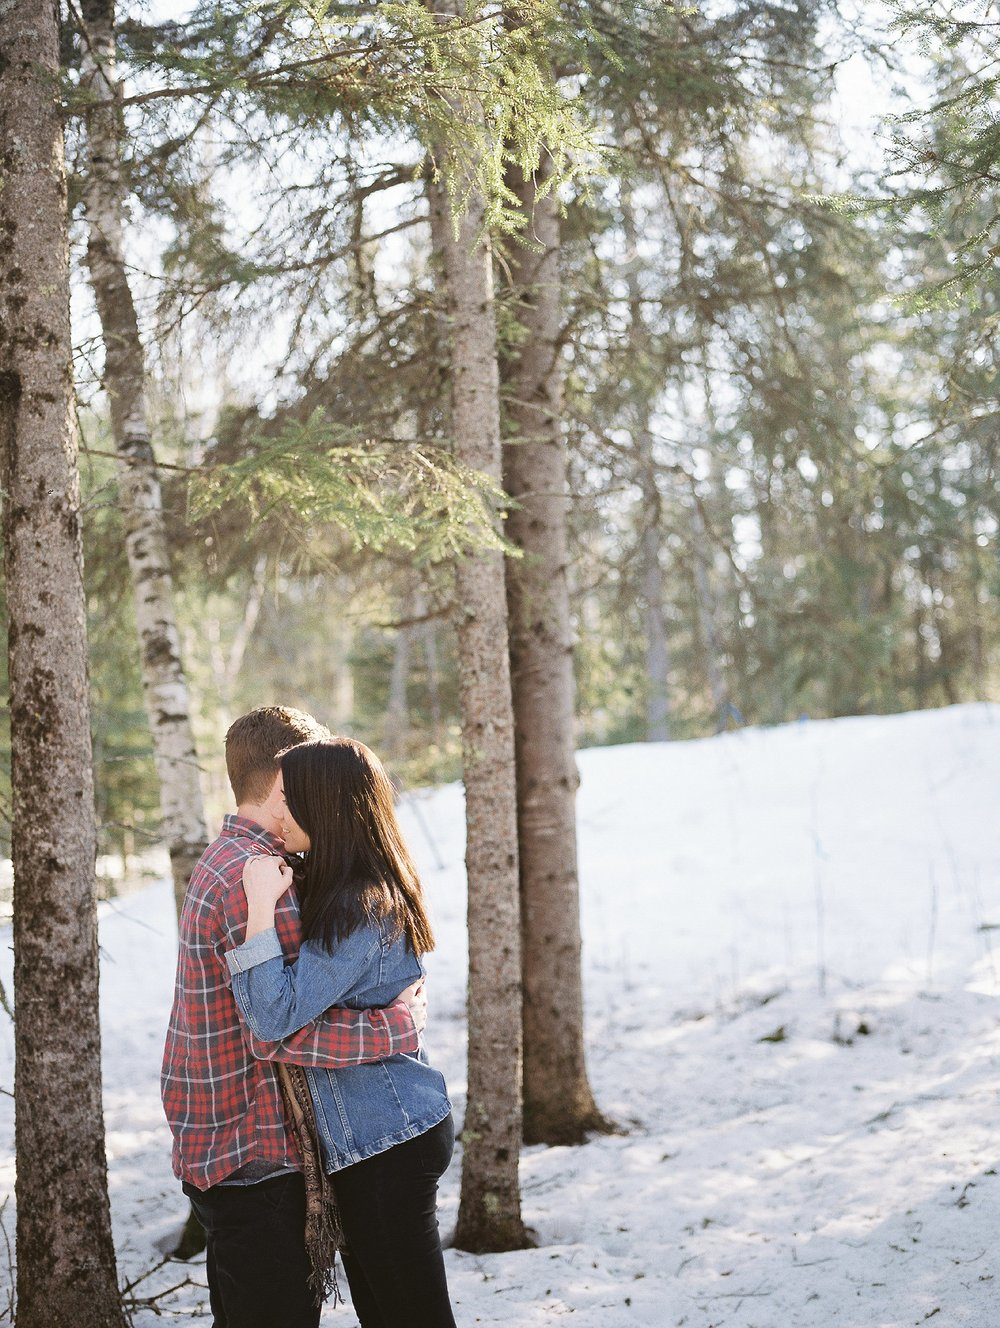 Forest engagement session | Winter couples photoshoot | photographed by film photographer Keila Marie Photography